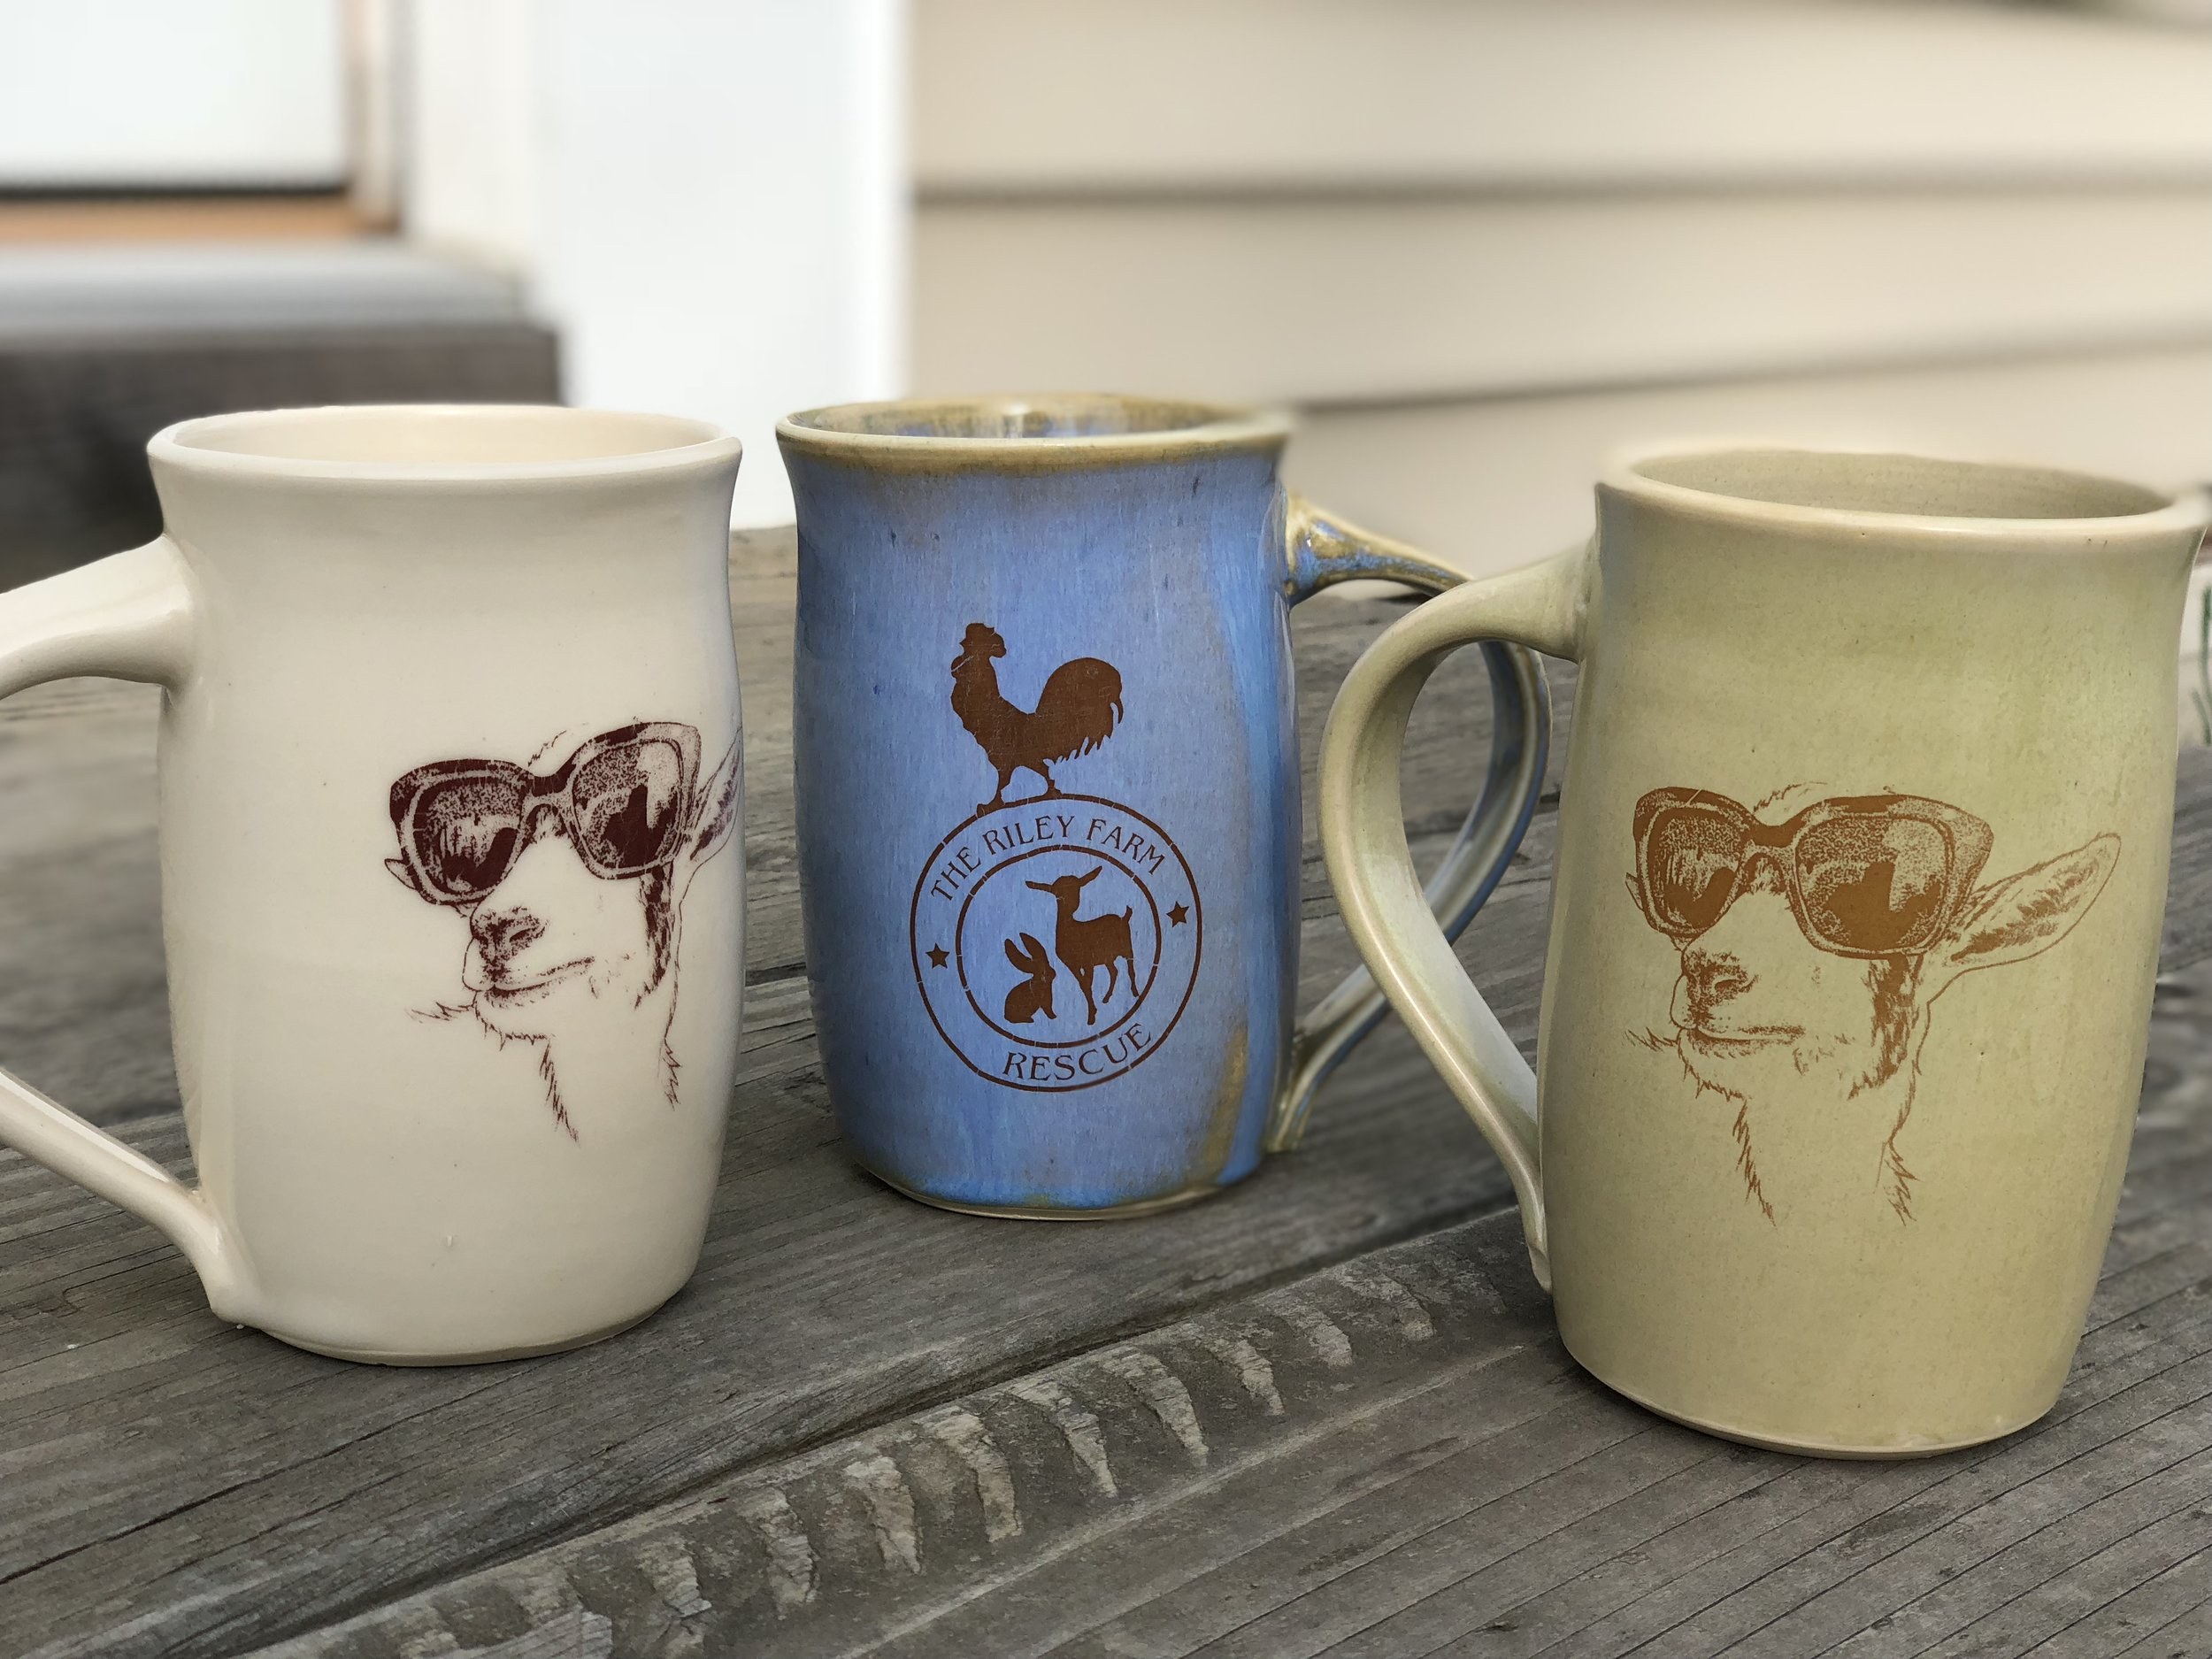 Riley Farm Mugs feature Theodore the hero on one side and the Farm logo on the other. they come in three colors and 35% of the sales go directly to the farm.